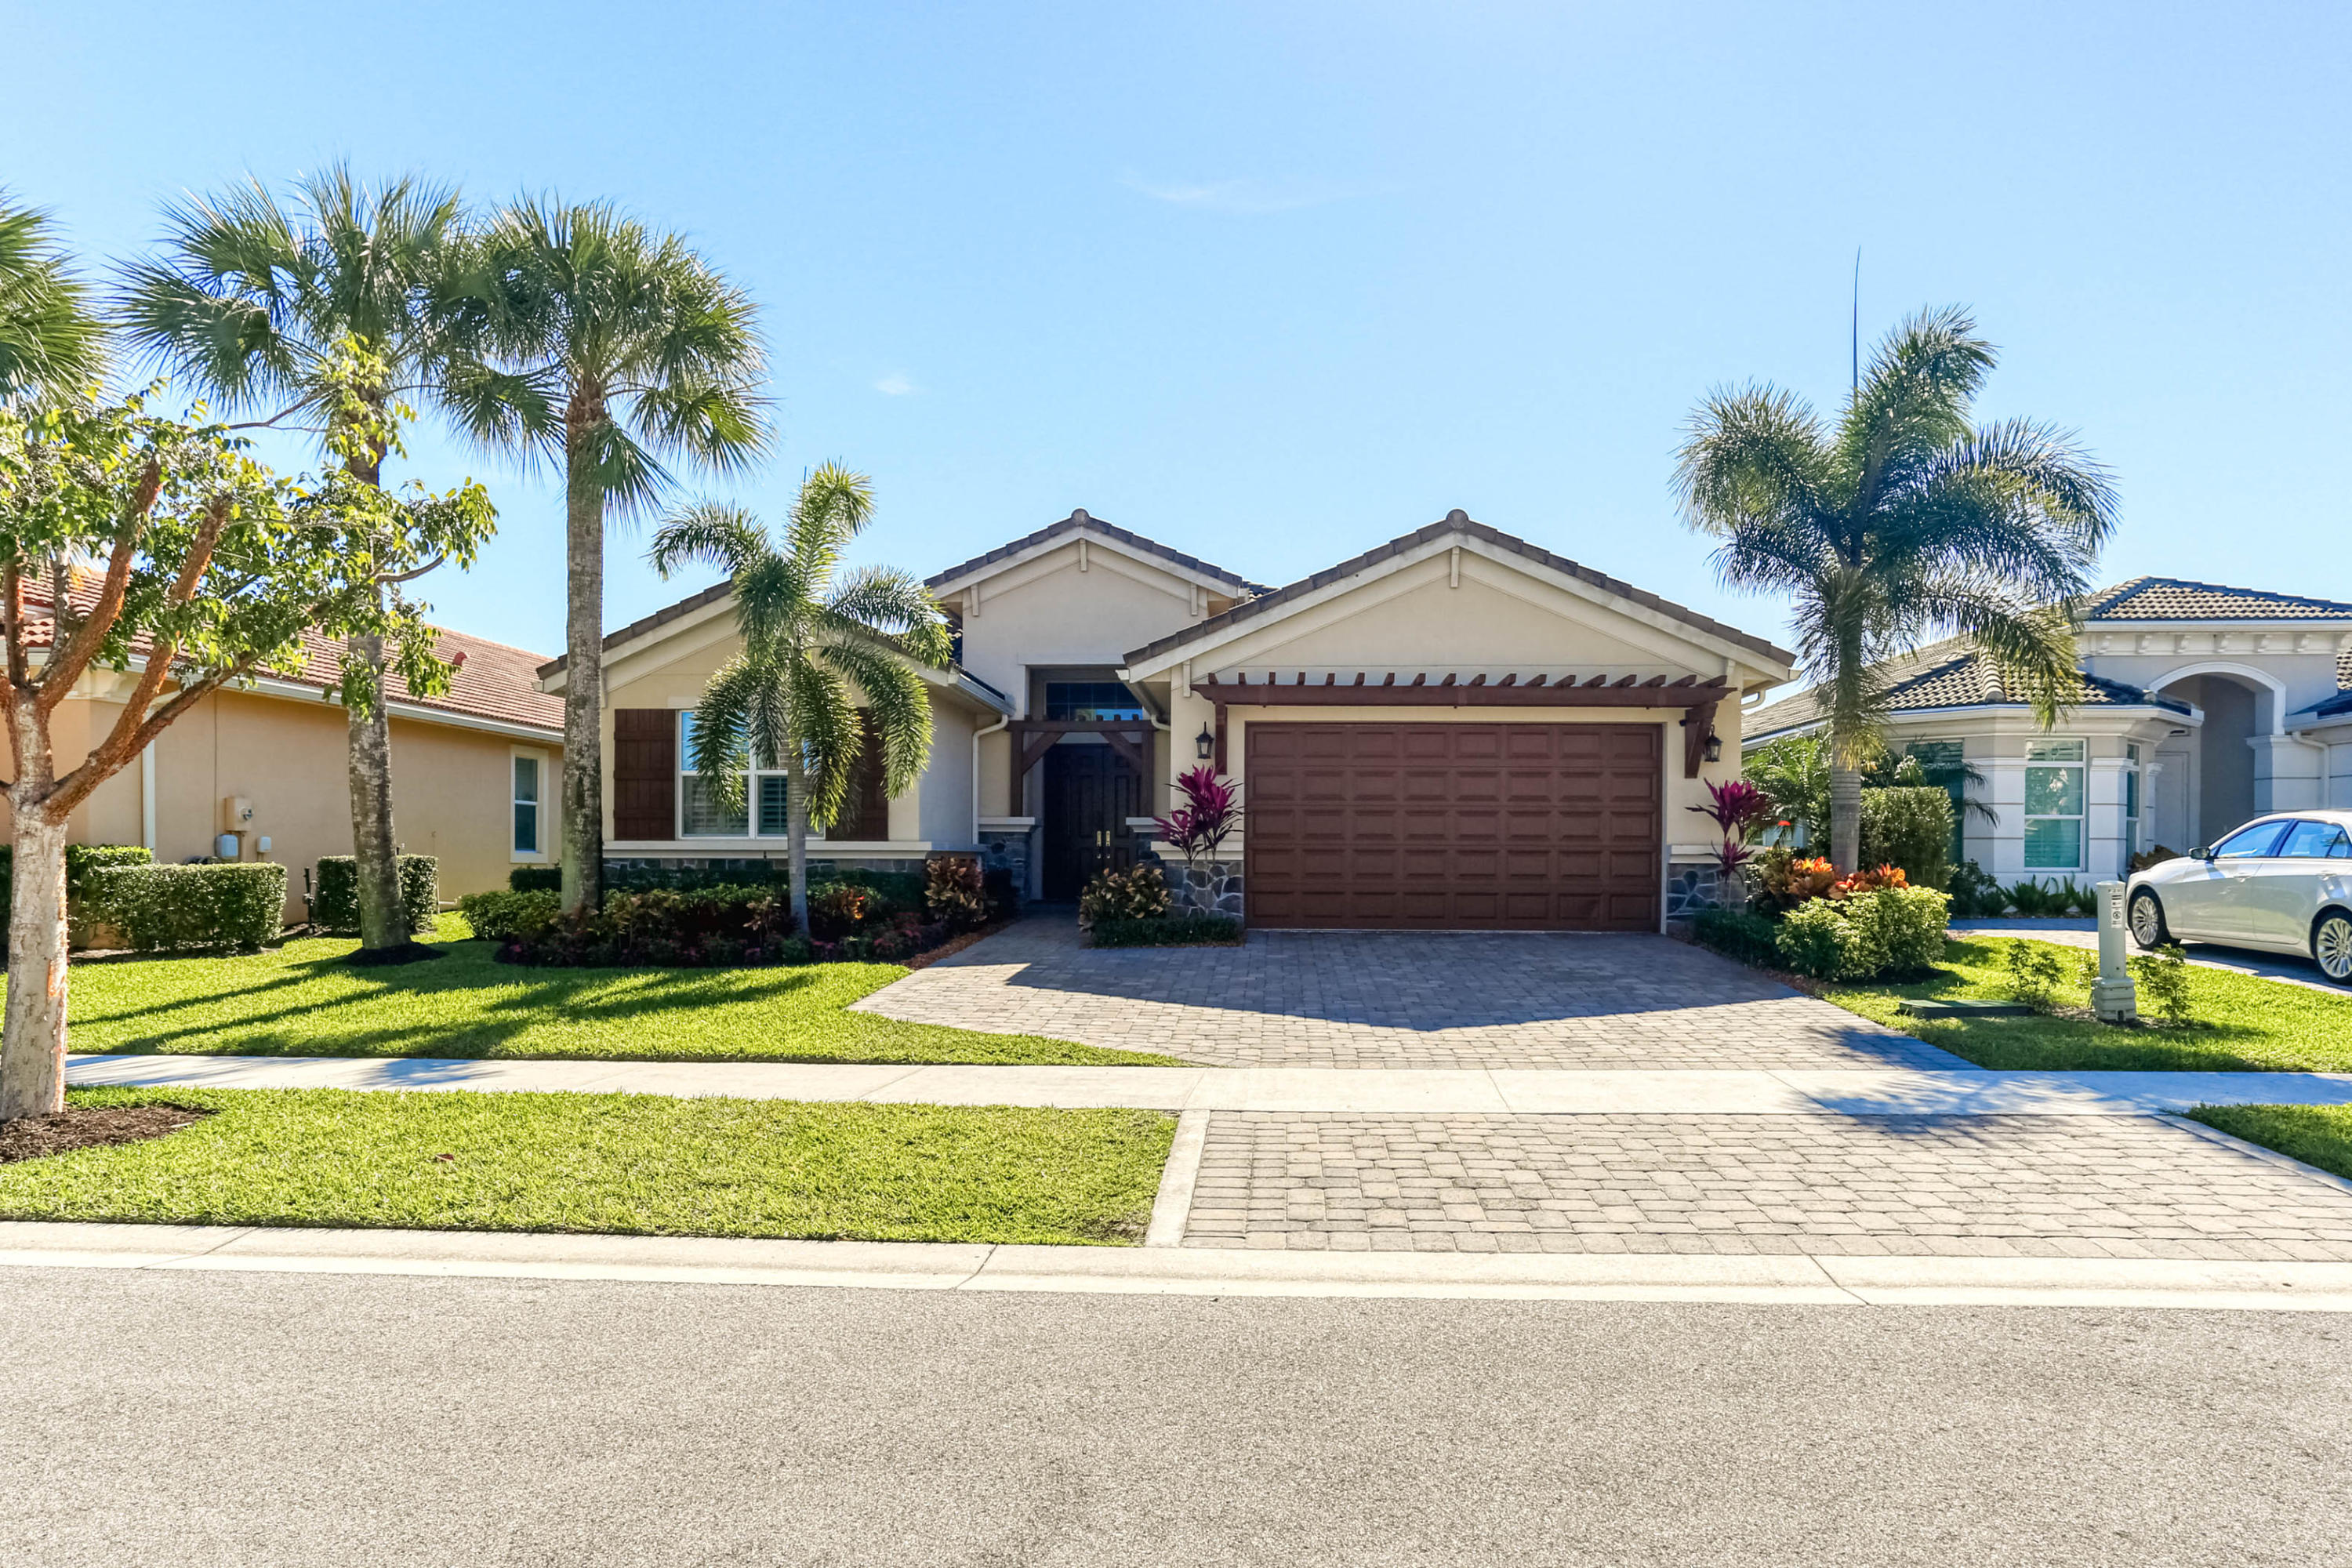 New Home for sale at 288 Carina Drive in Jupiter